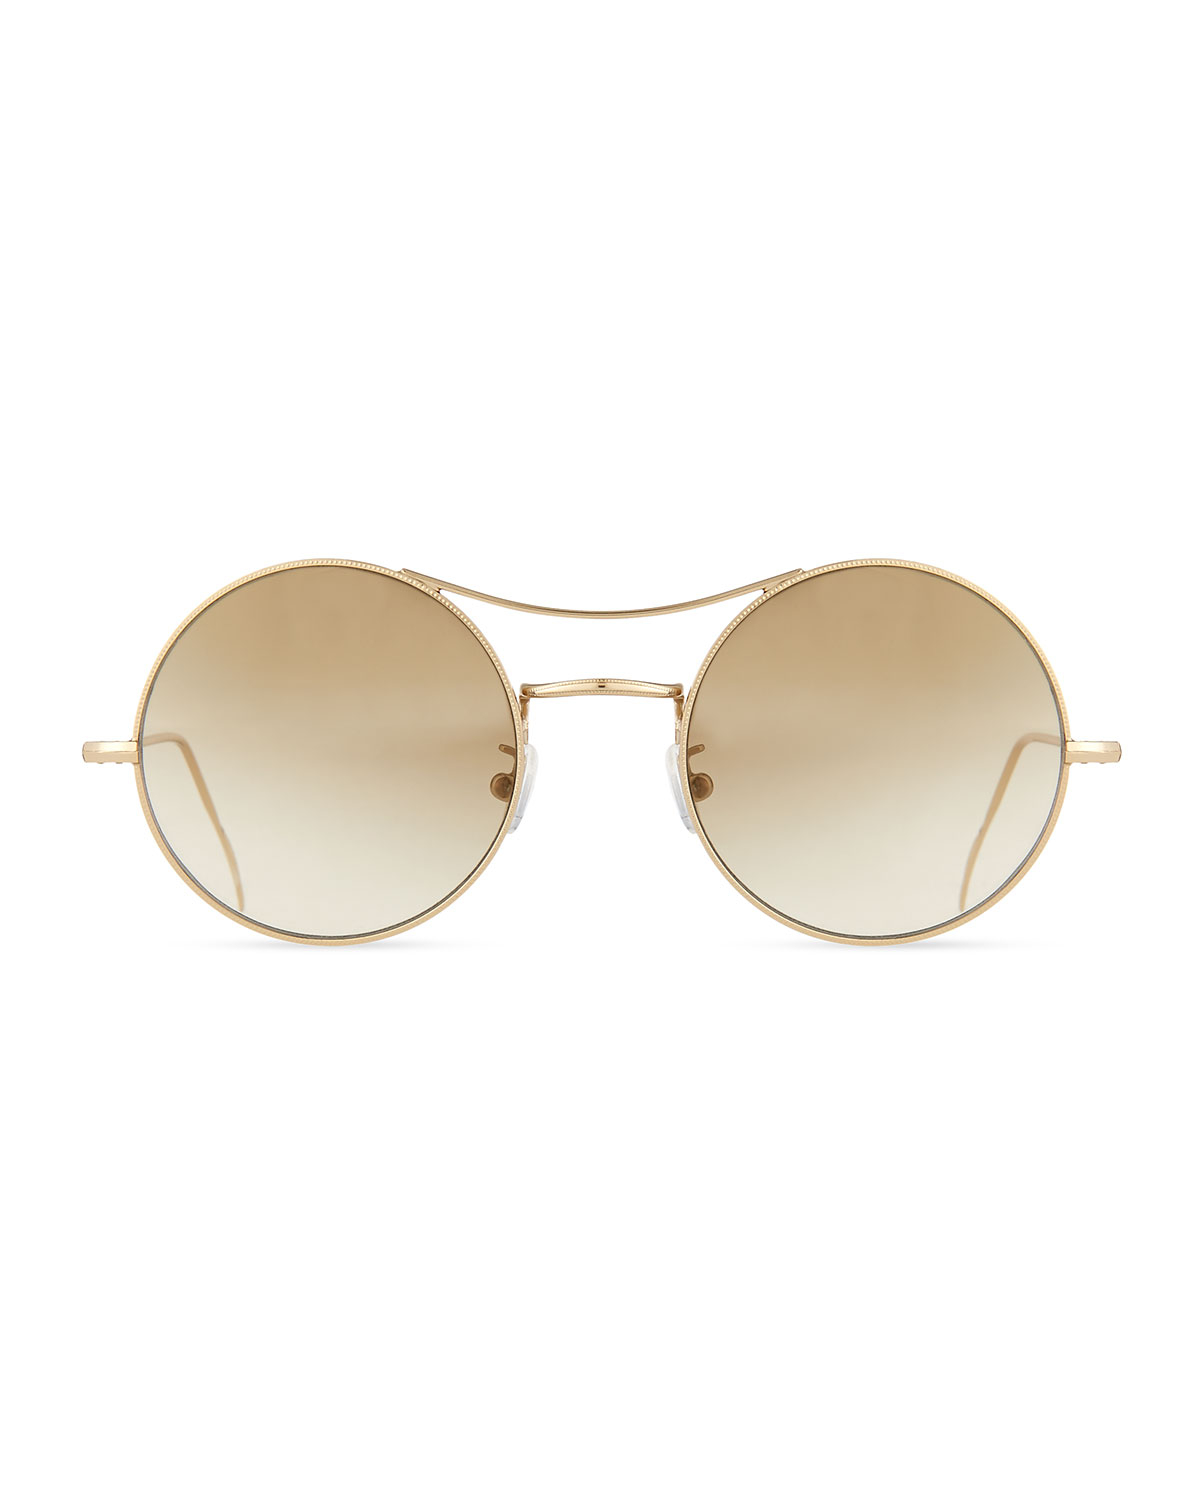 Kyme ros round mirror sunglasses in gold save 50 lyst for Mirror sunglasses